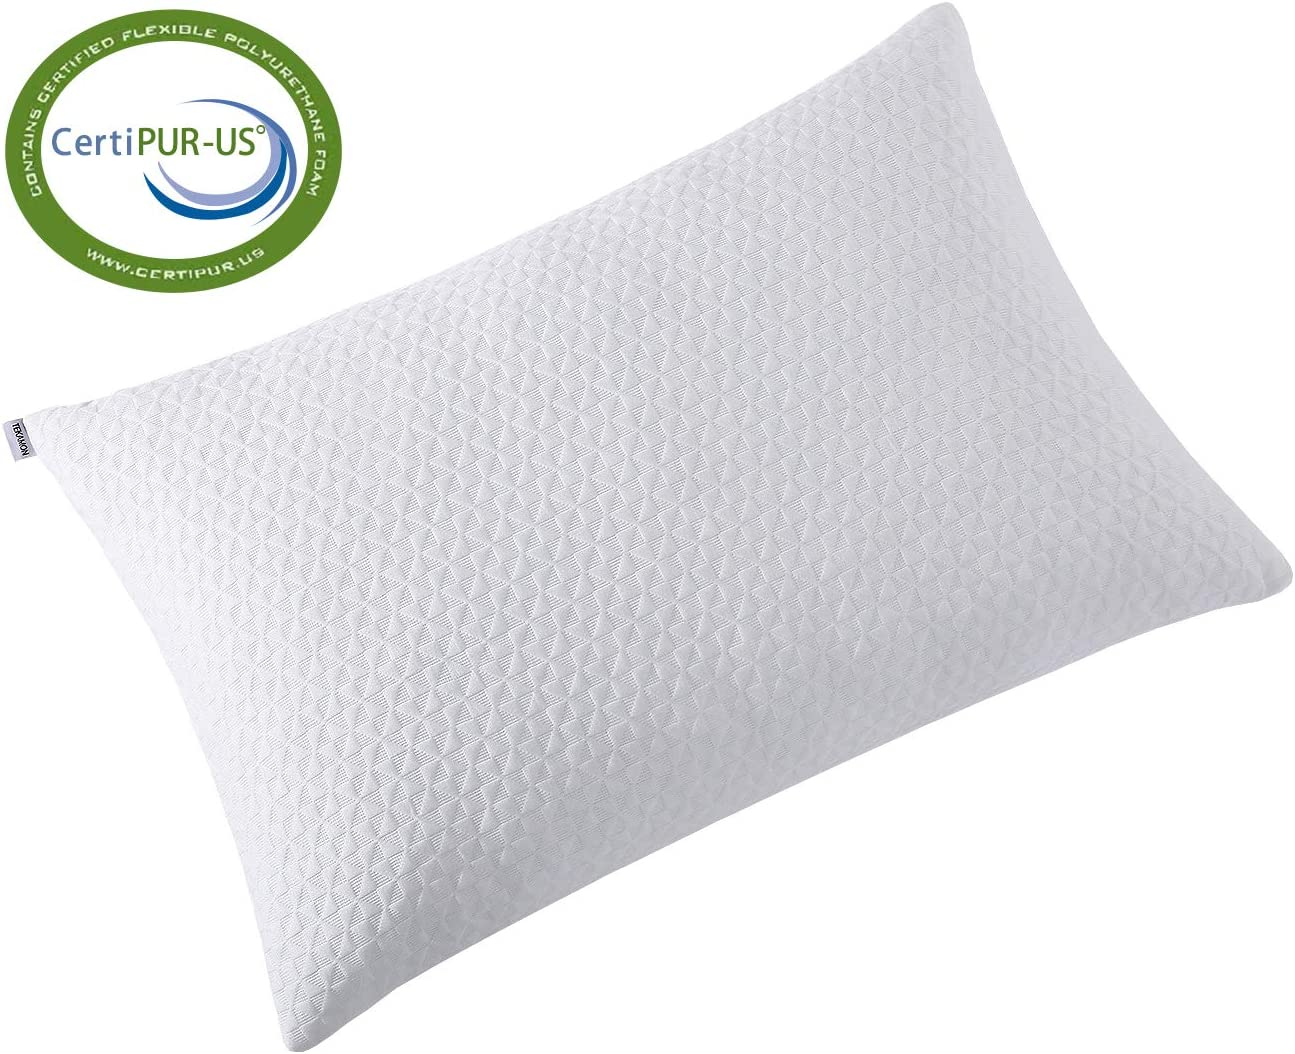 TEKAMON Shredded Memory Foam Bed Pillows for Sleeping with Washable & Removable Bamboo Cooling Hypoallergenic Sleep Pillow for Back, Stomach, Side Sleepers - CertiPUR-US Certified